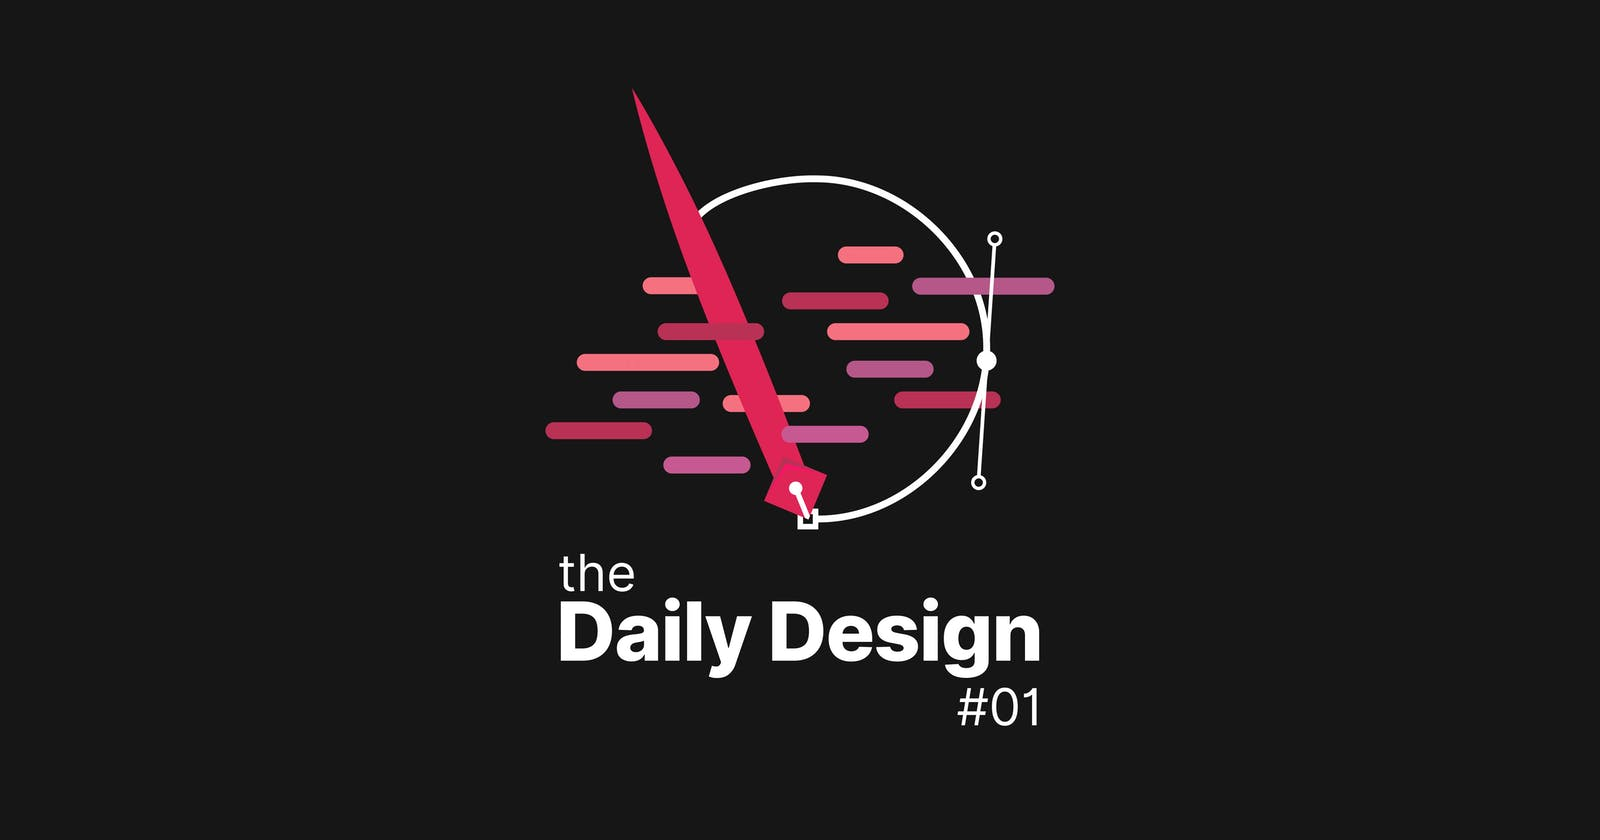 The Daily Design #01